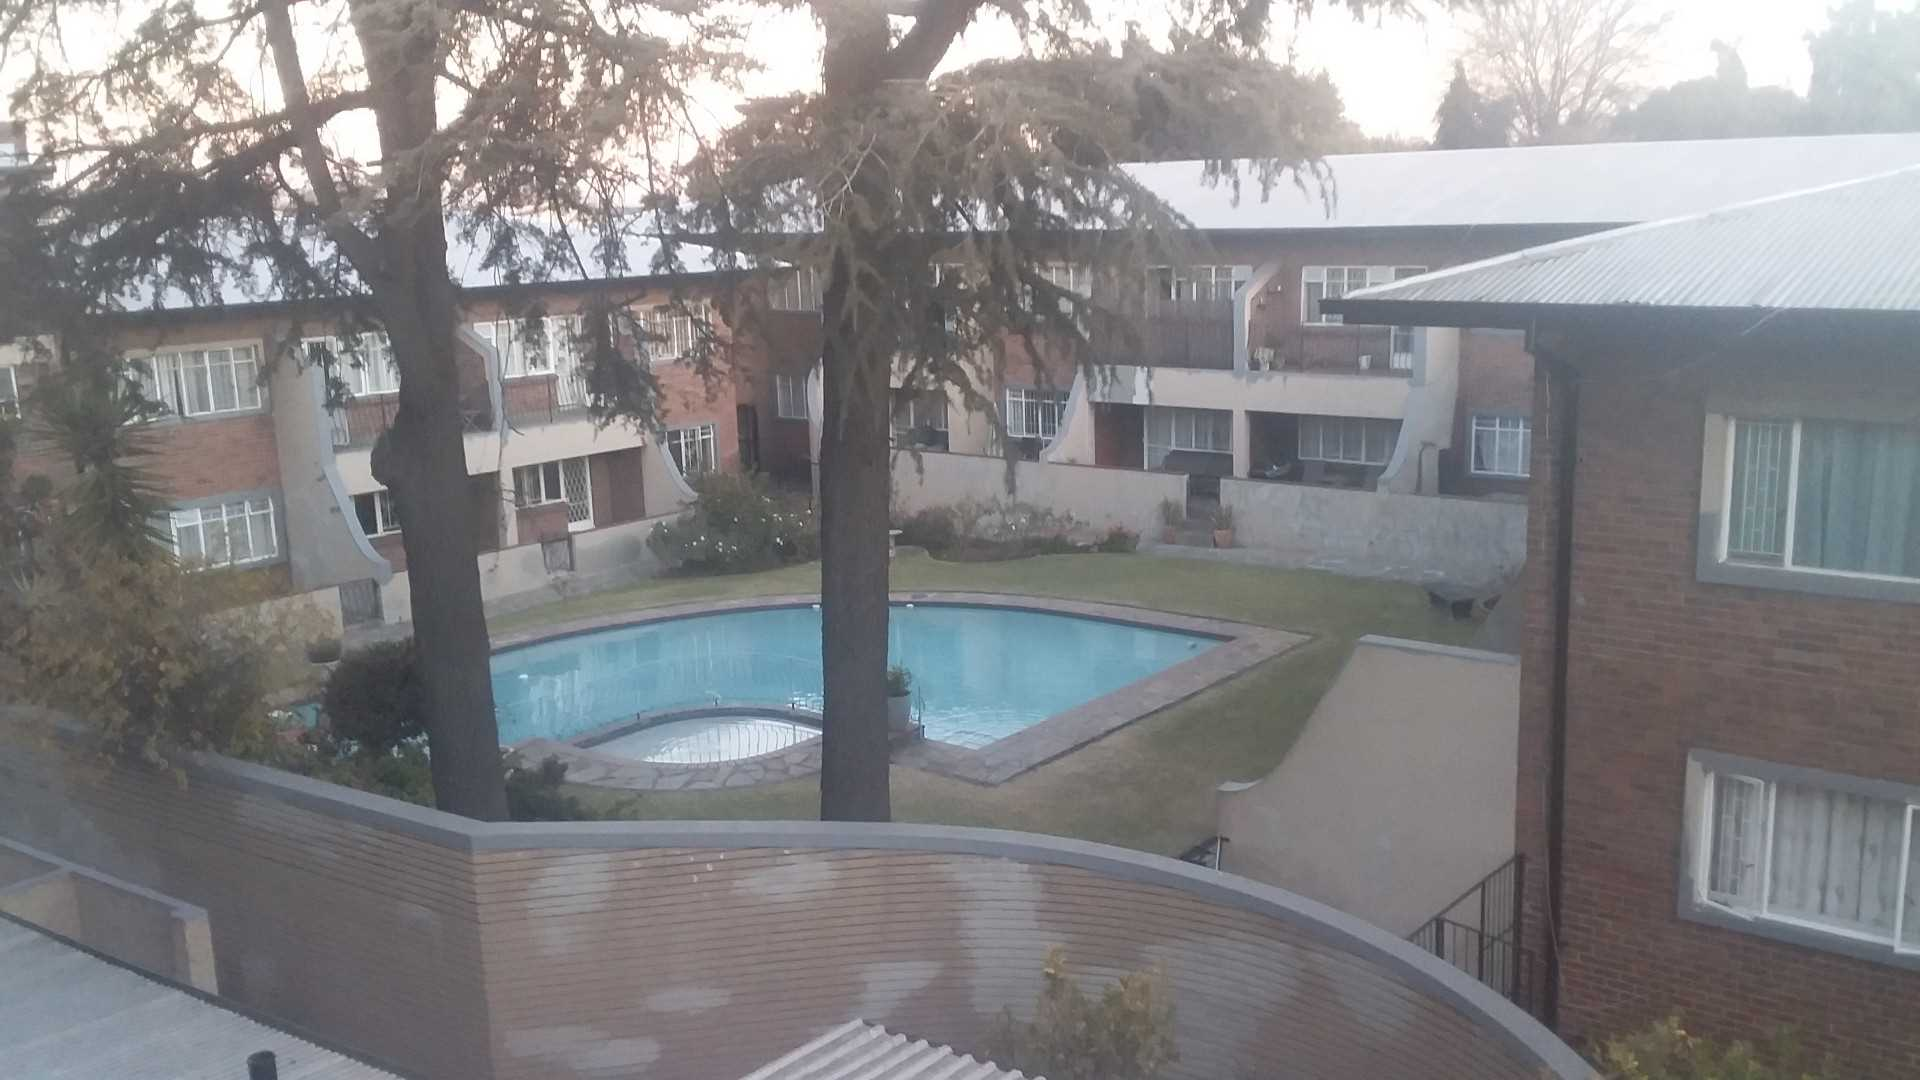 Access to stunning pool and braai facilities. This complex is safe and secure and has much to offer.